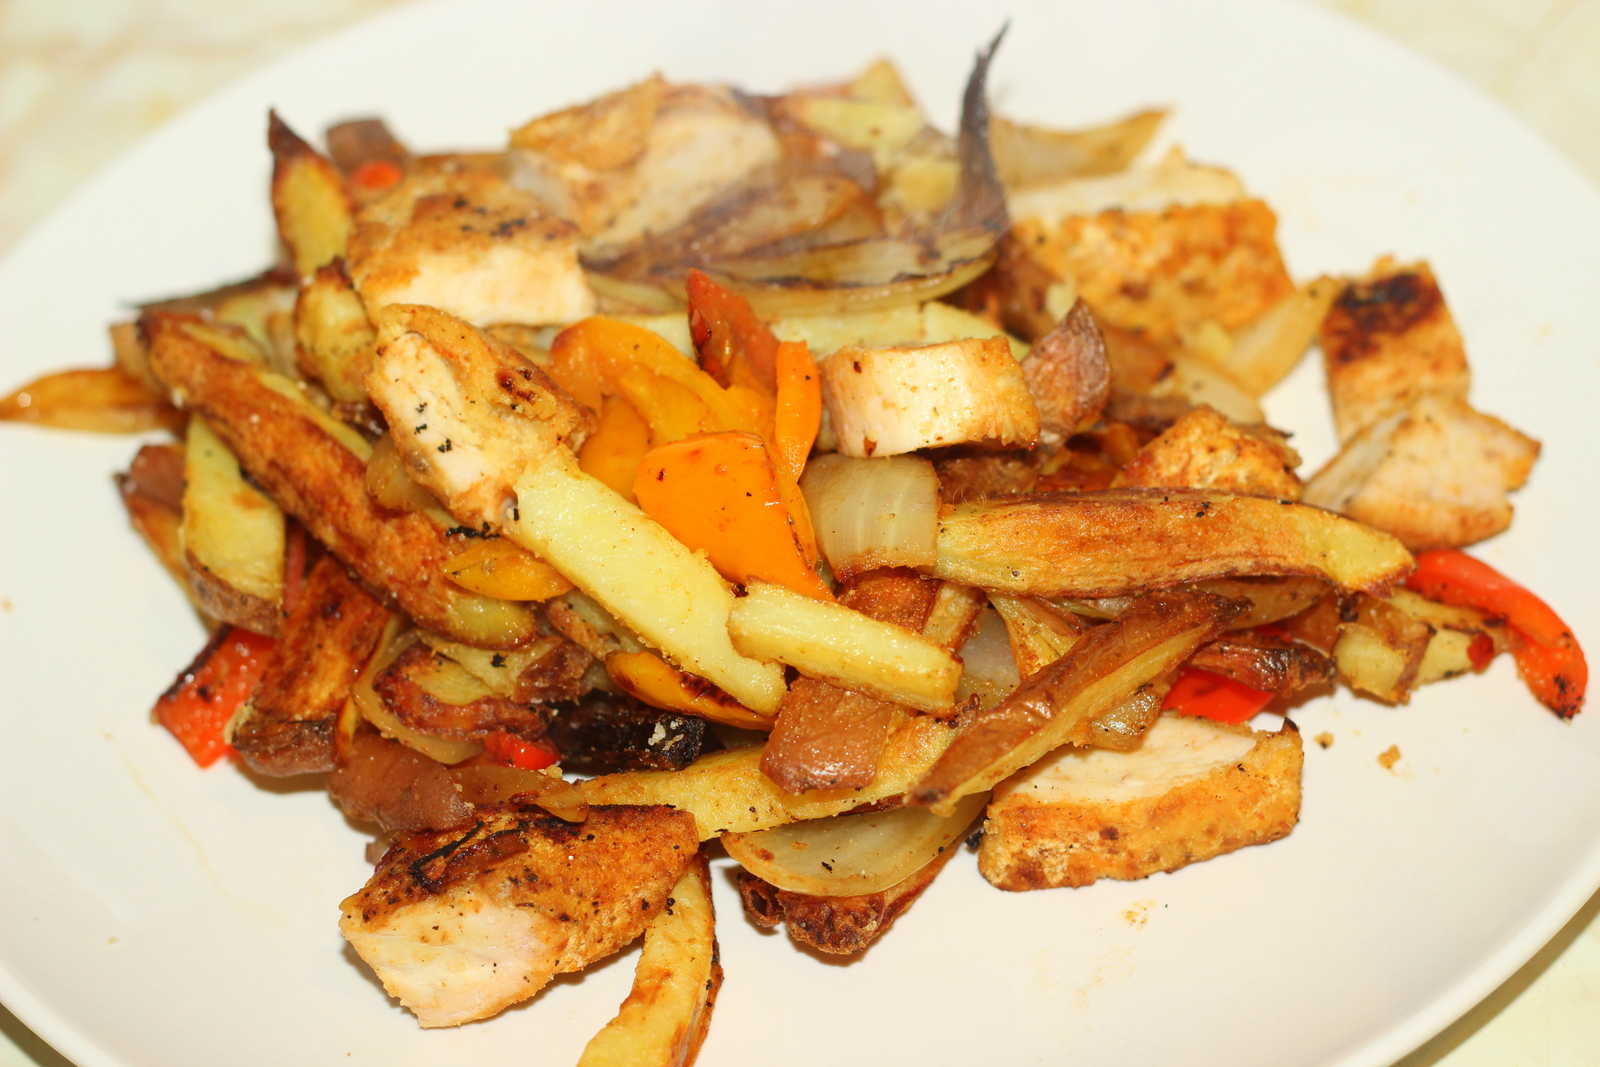 The slimming world friendly spice bag recipe lovely The slimming world